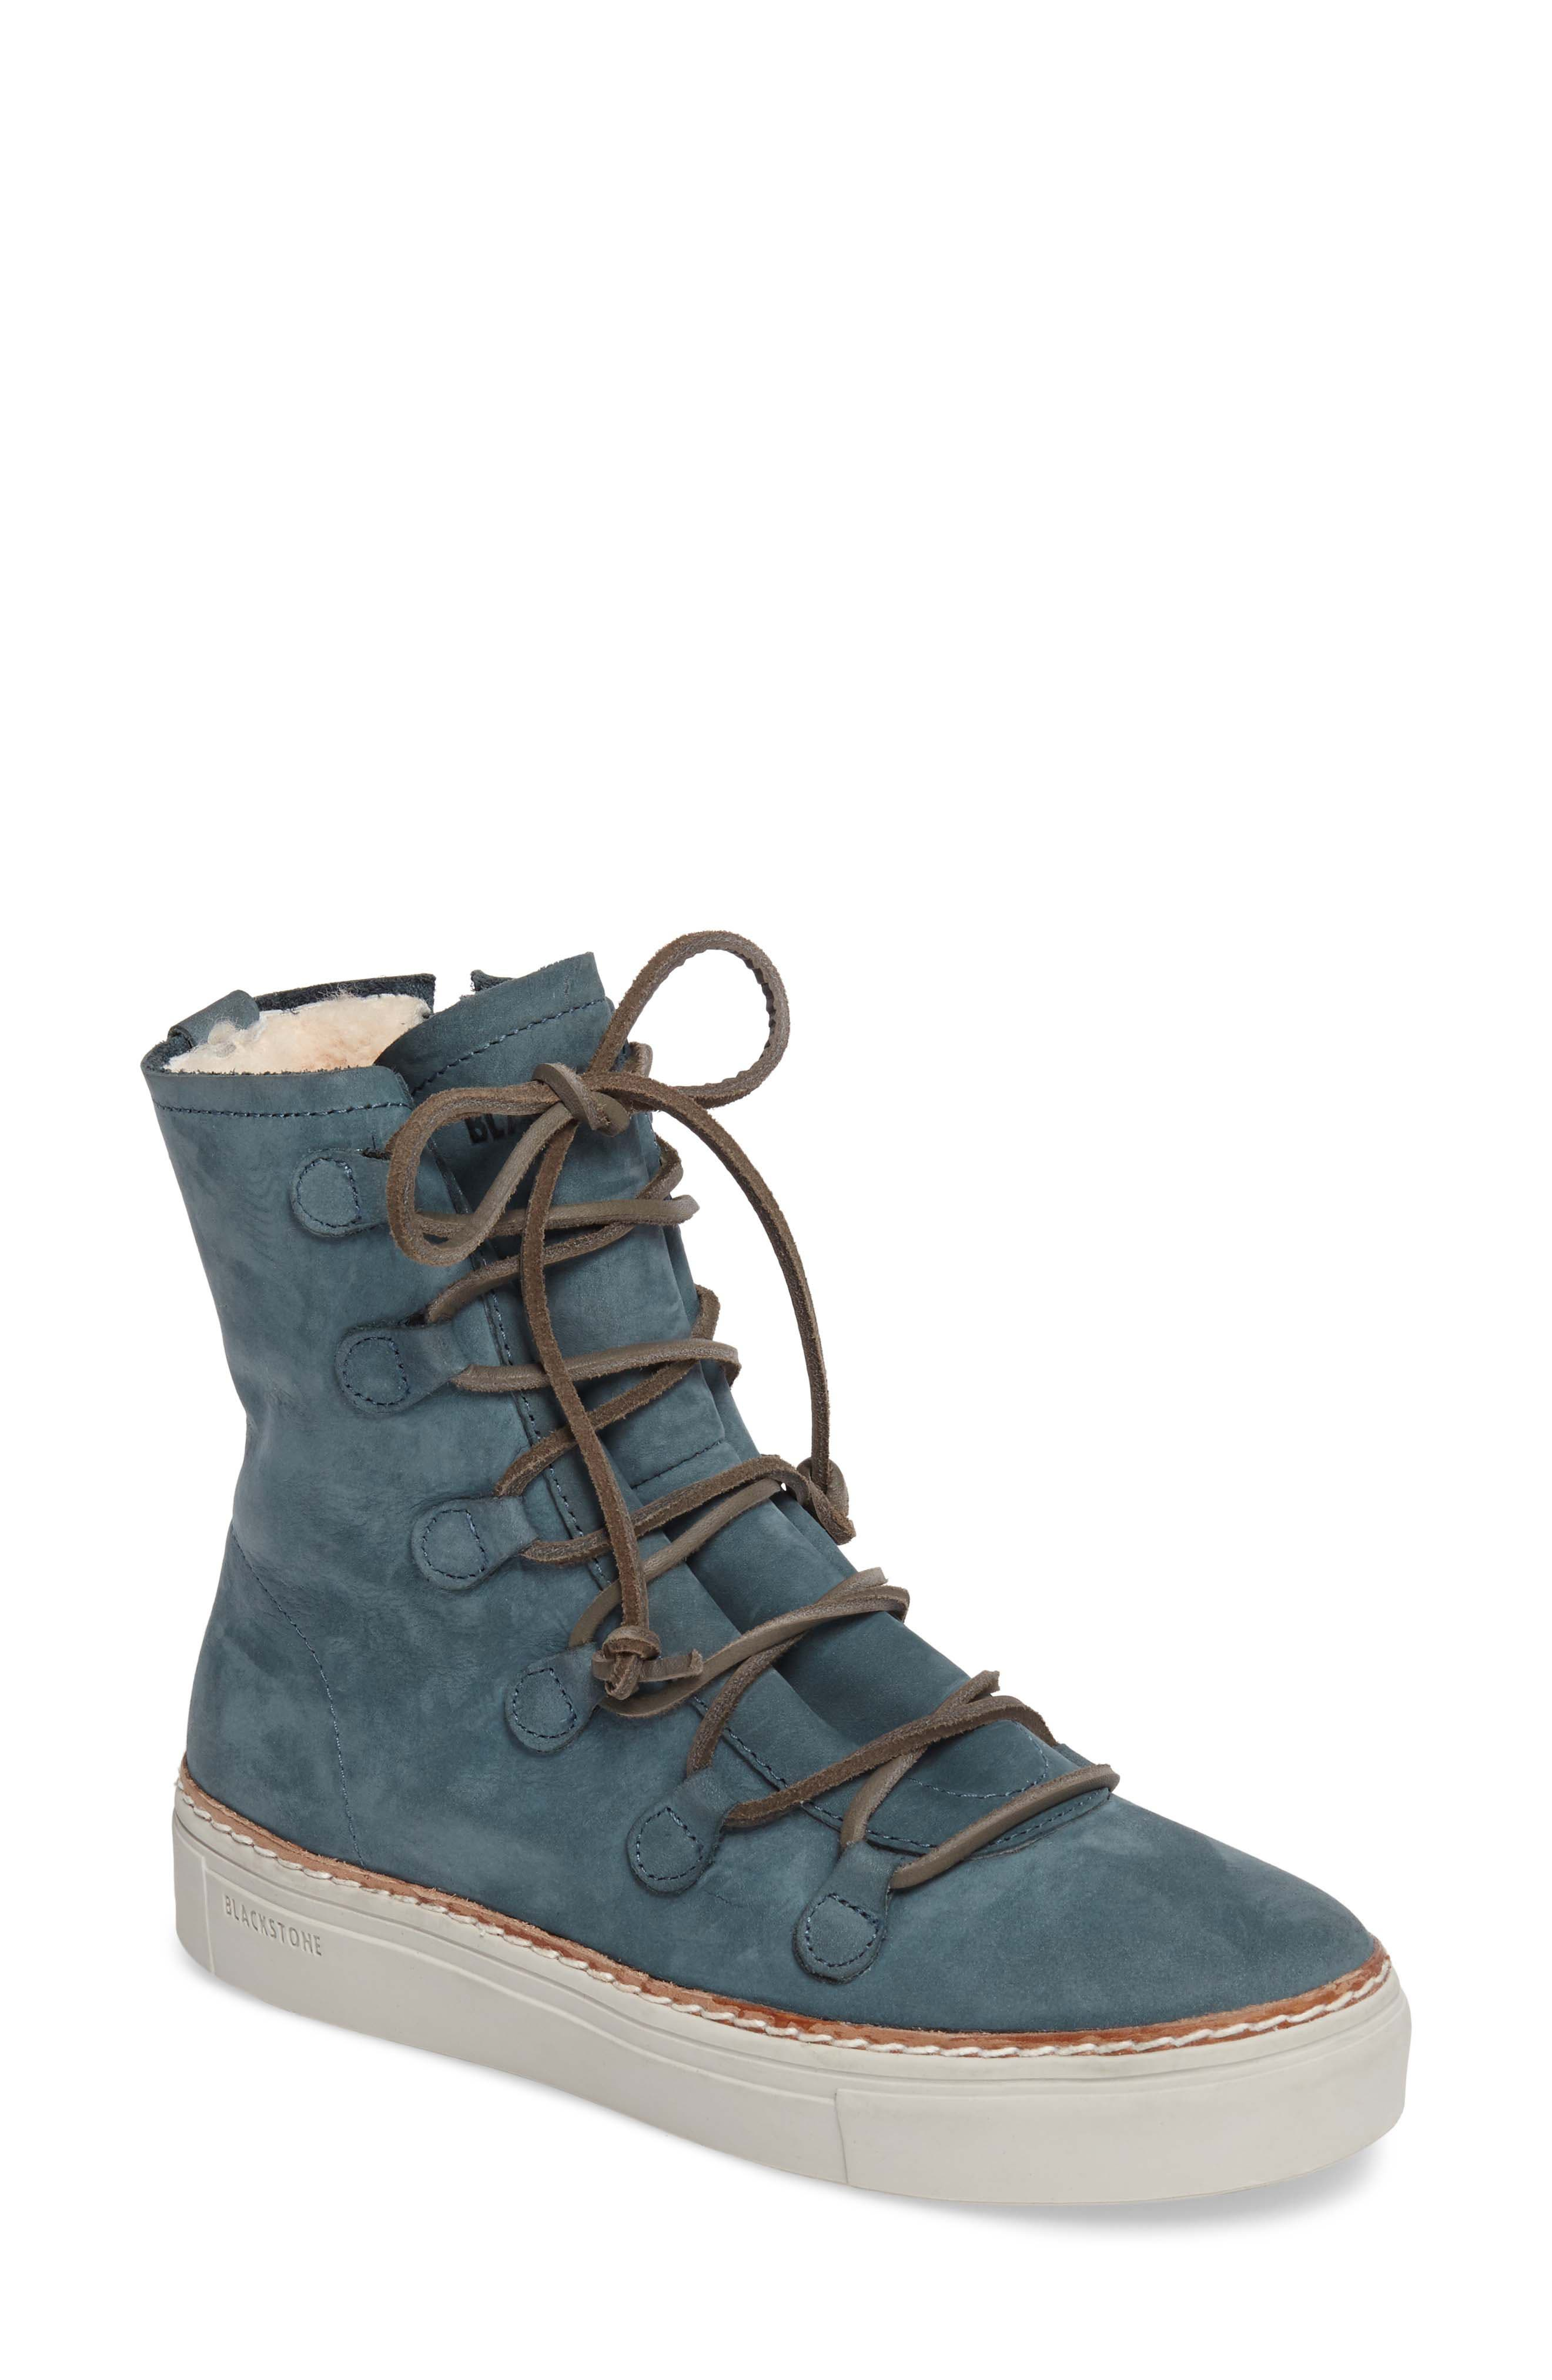 Blackstone Ol26 Genuine Shearling Lined Lace-Up Bootie, Blue